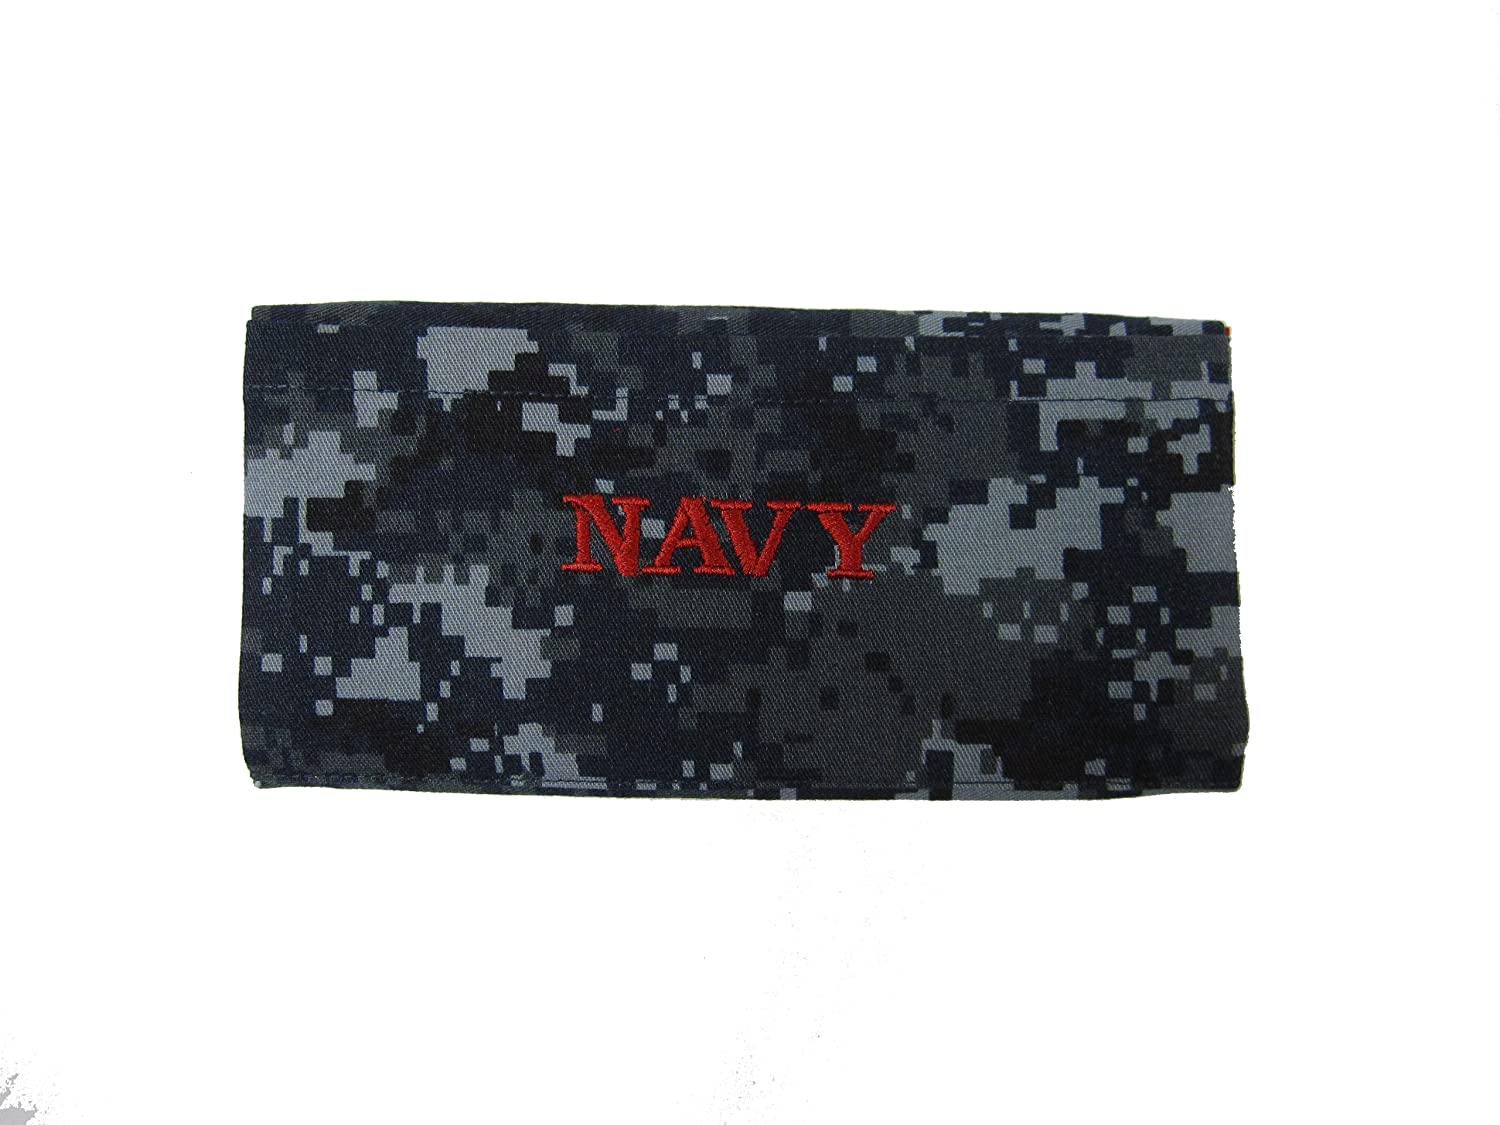 Amazon.com: U.S. Navy Military cartera, Color Azul Marino ...